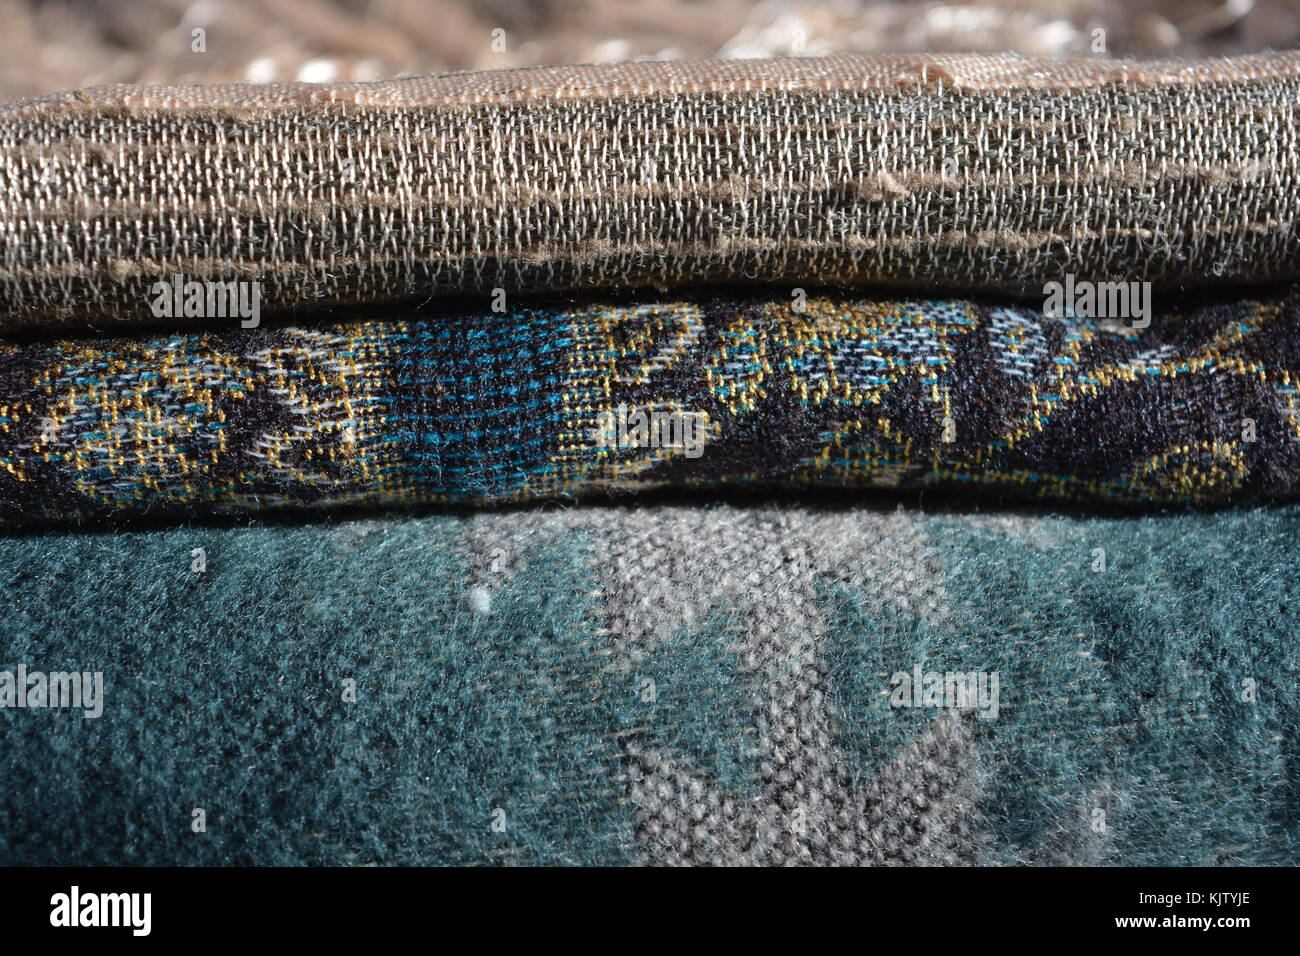 Wool scarf, selective focus showing the texture of the fabric. - Stock Image